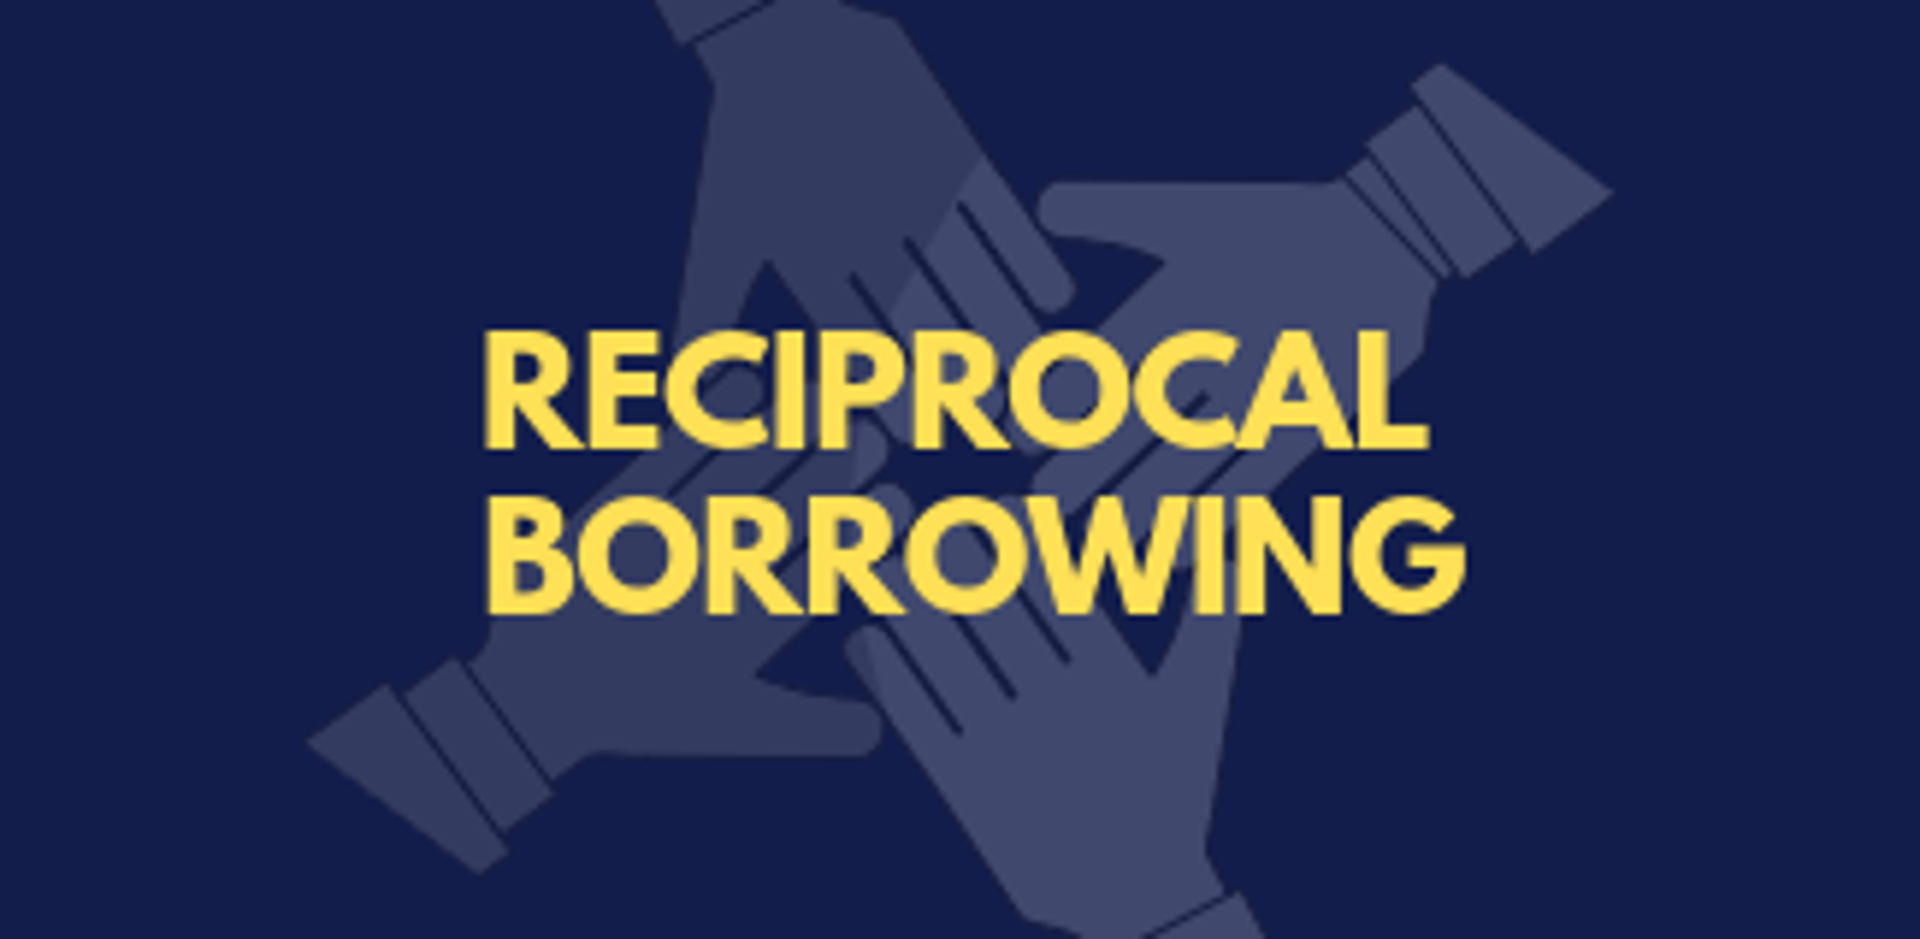 Reciprocal Borrowing